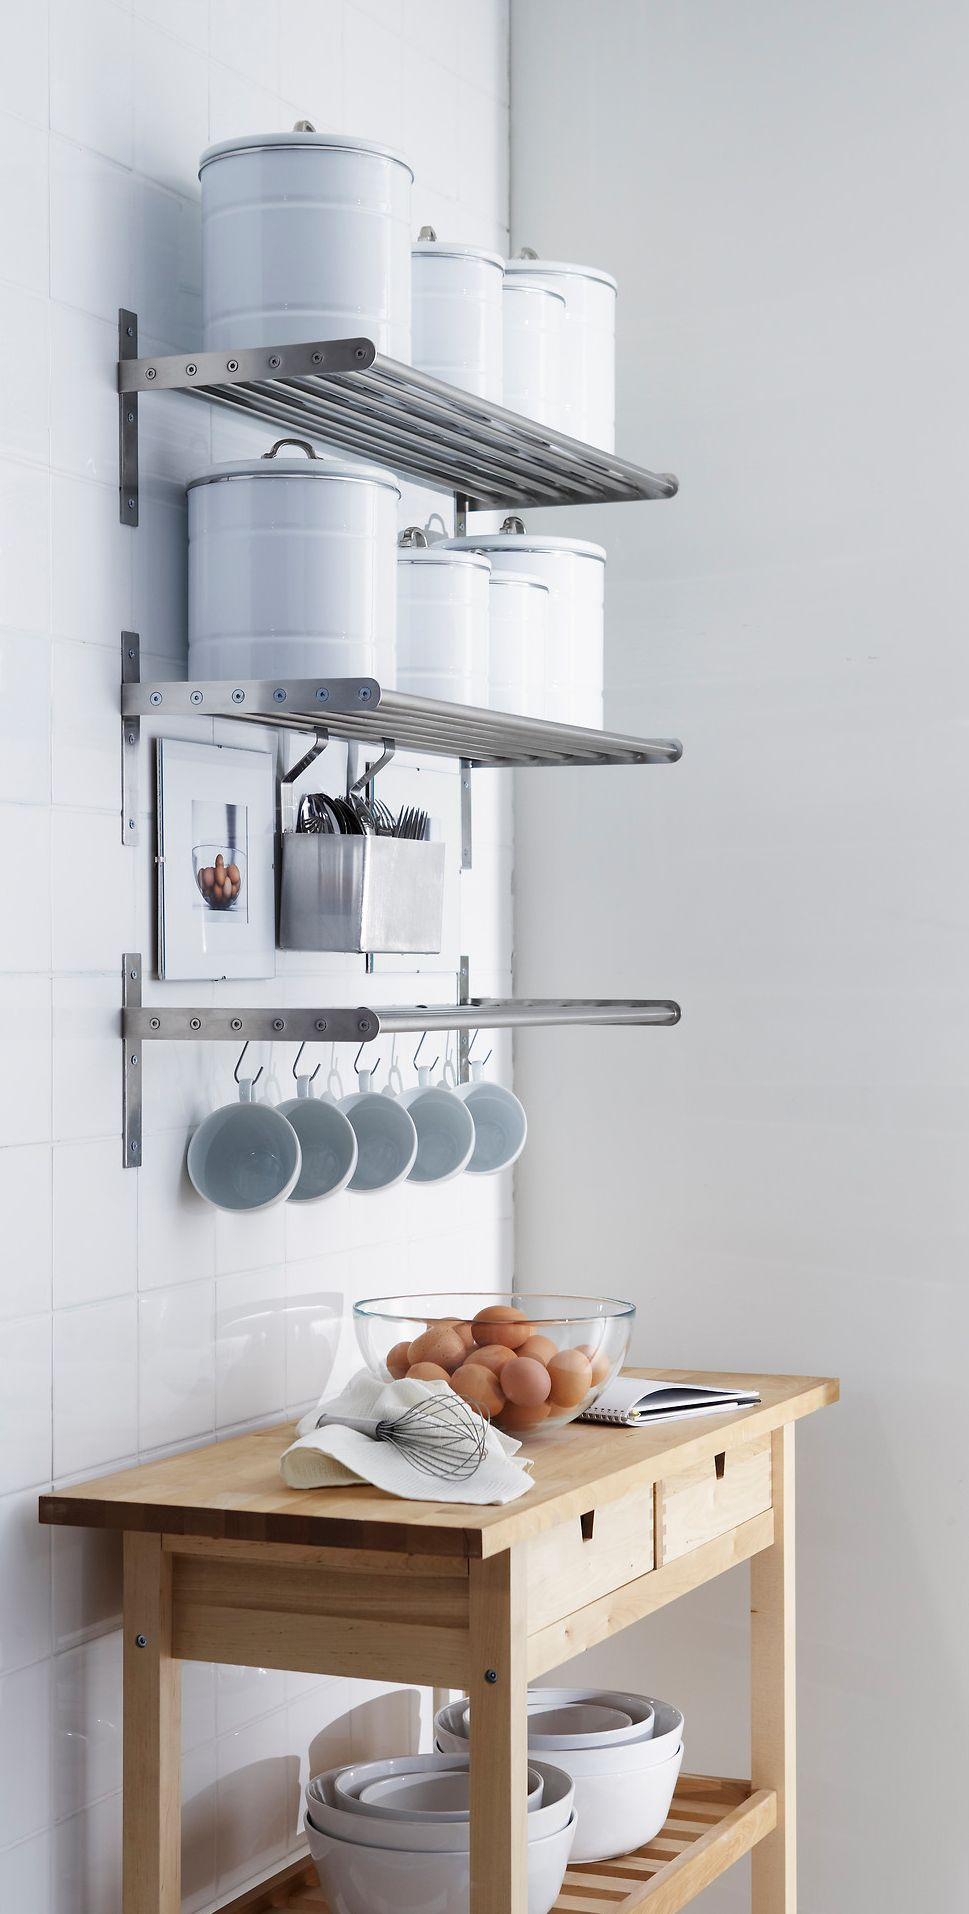 Greatest 65 Ingenious Kitchen Organization Tips And Storage Ideas KS75